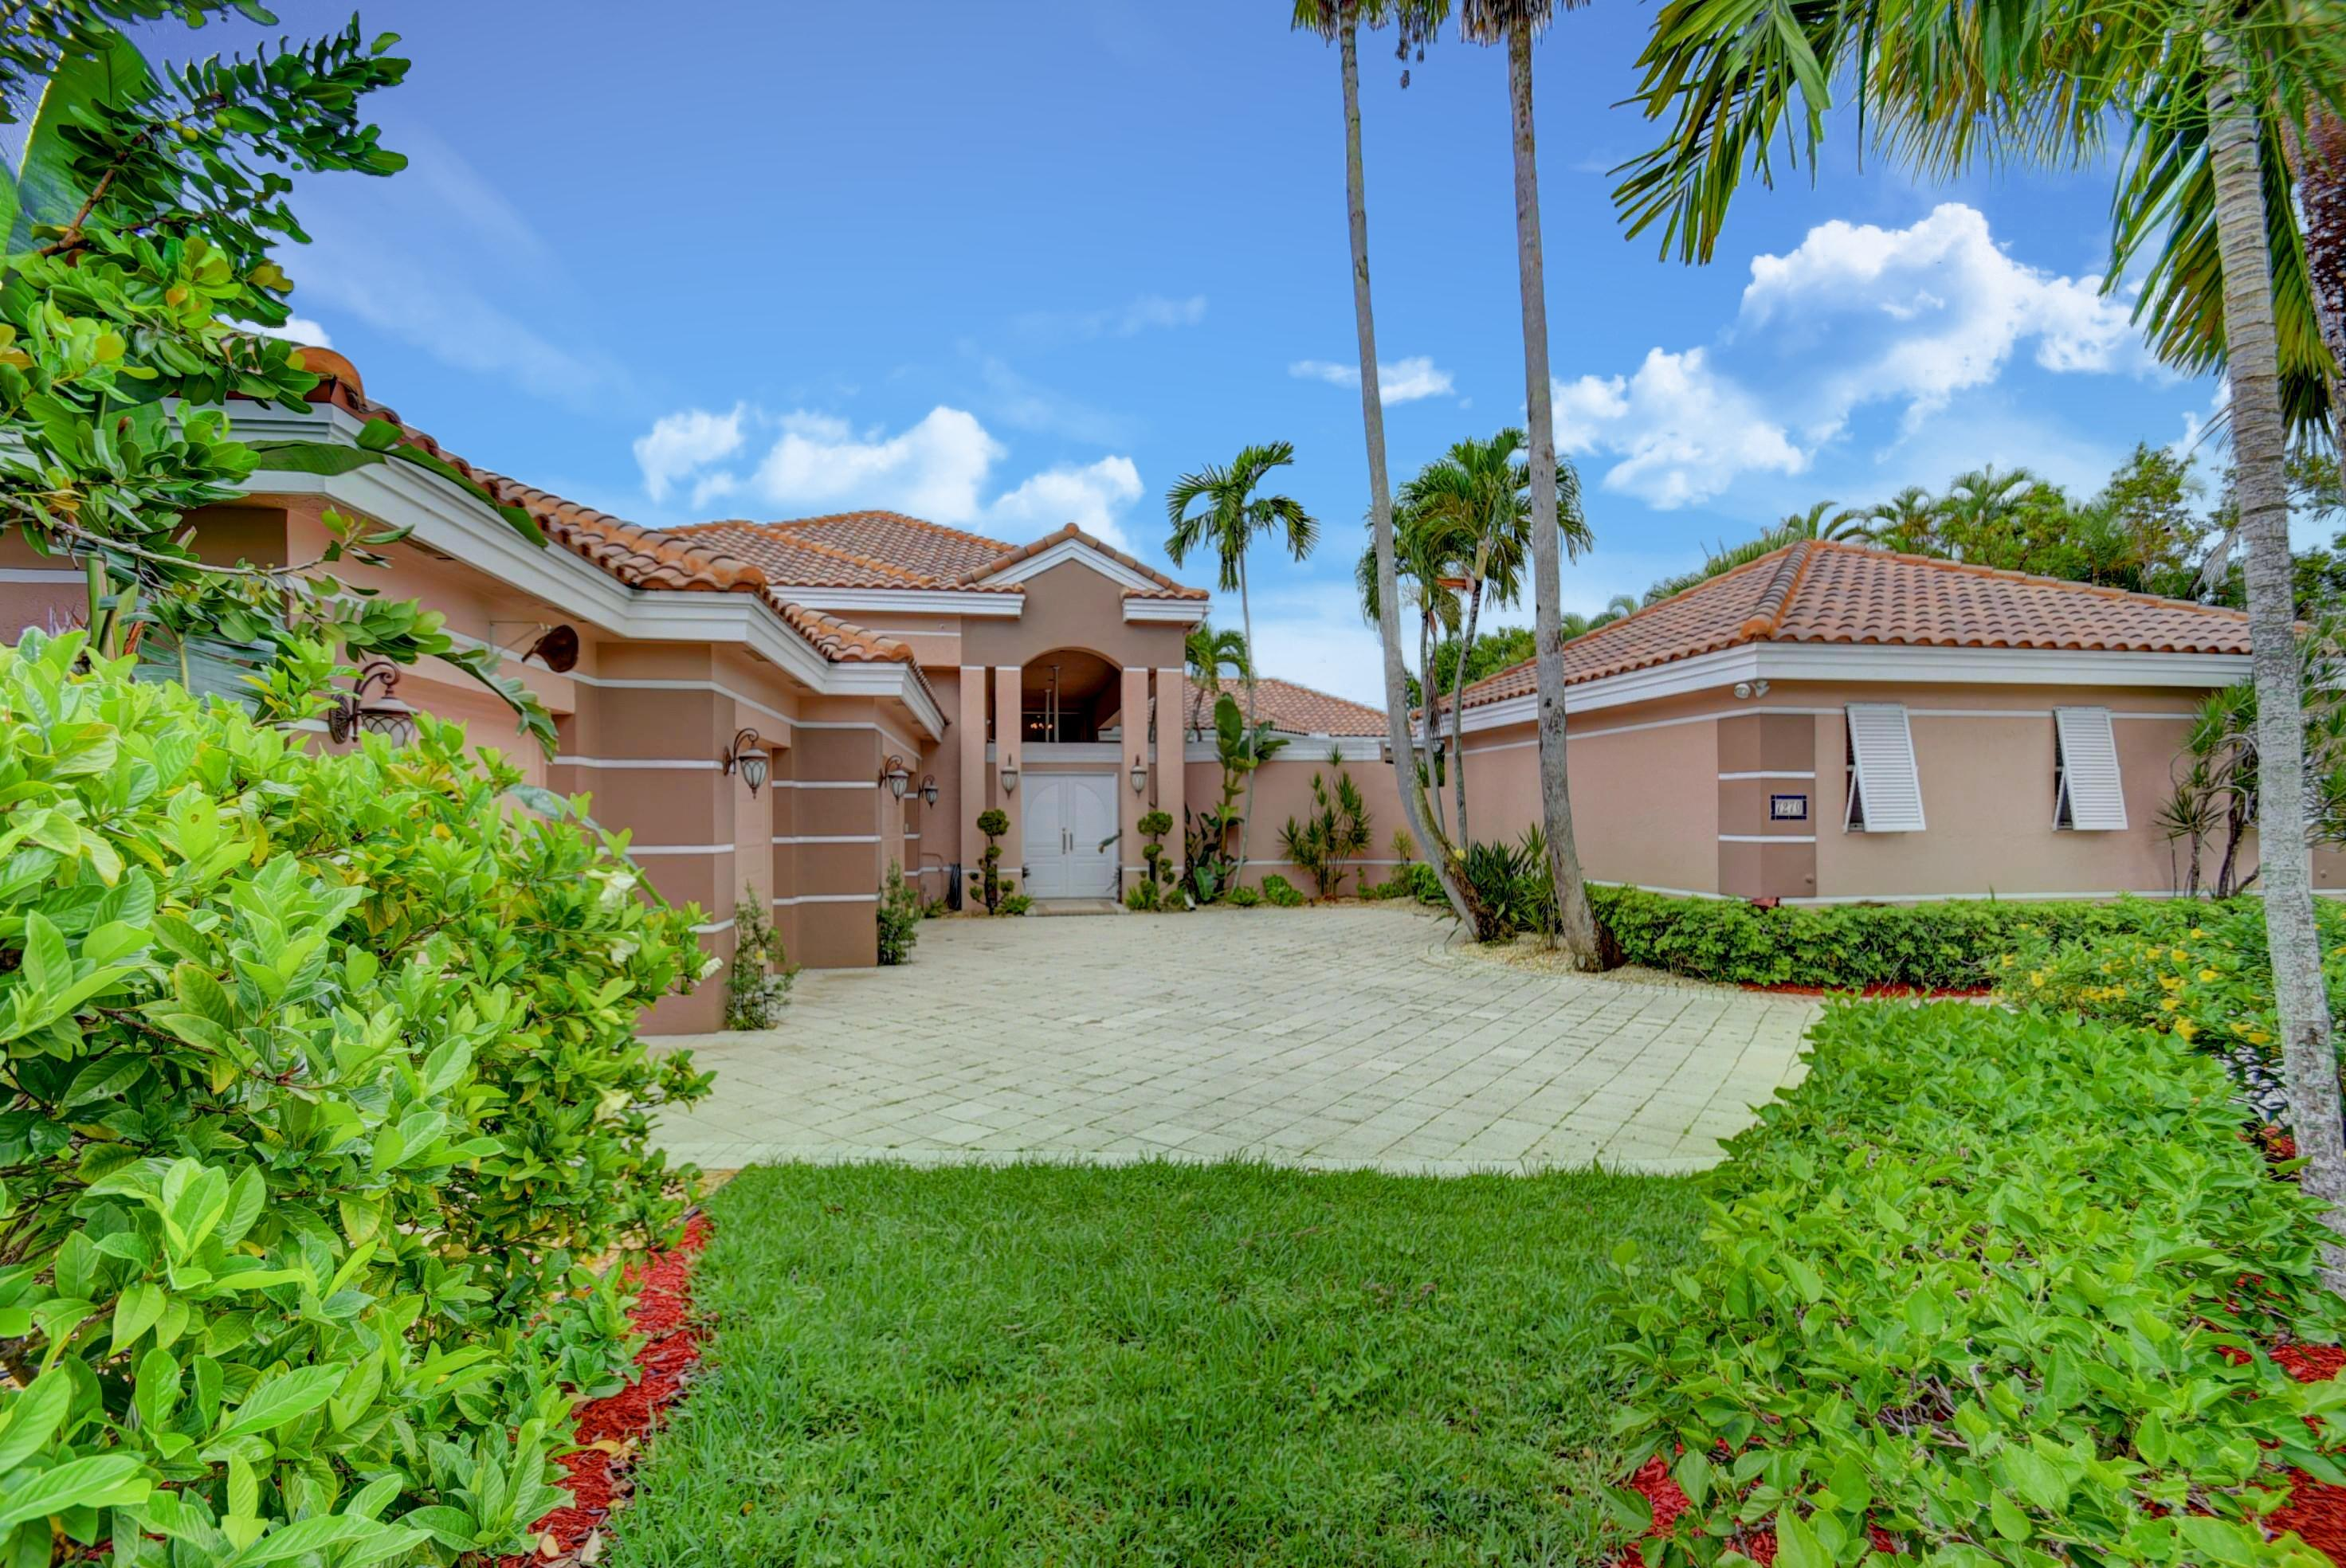 Photo of home for sale at 7270 Sidonia Court, Boca Raton FL